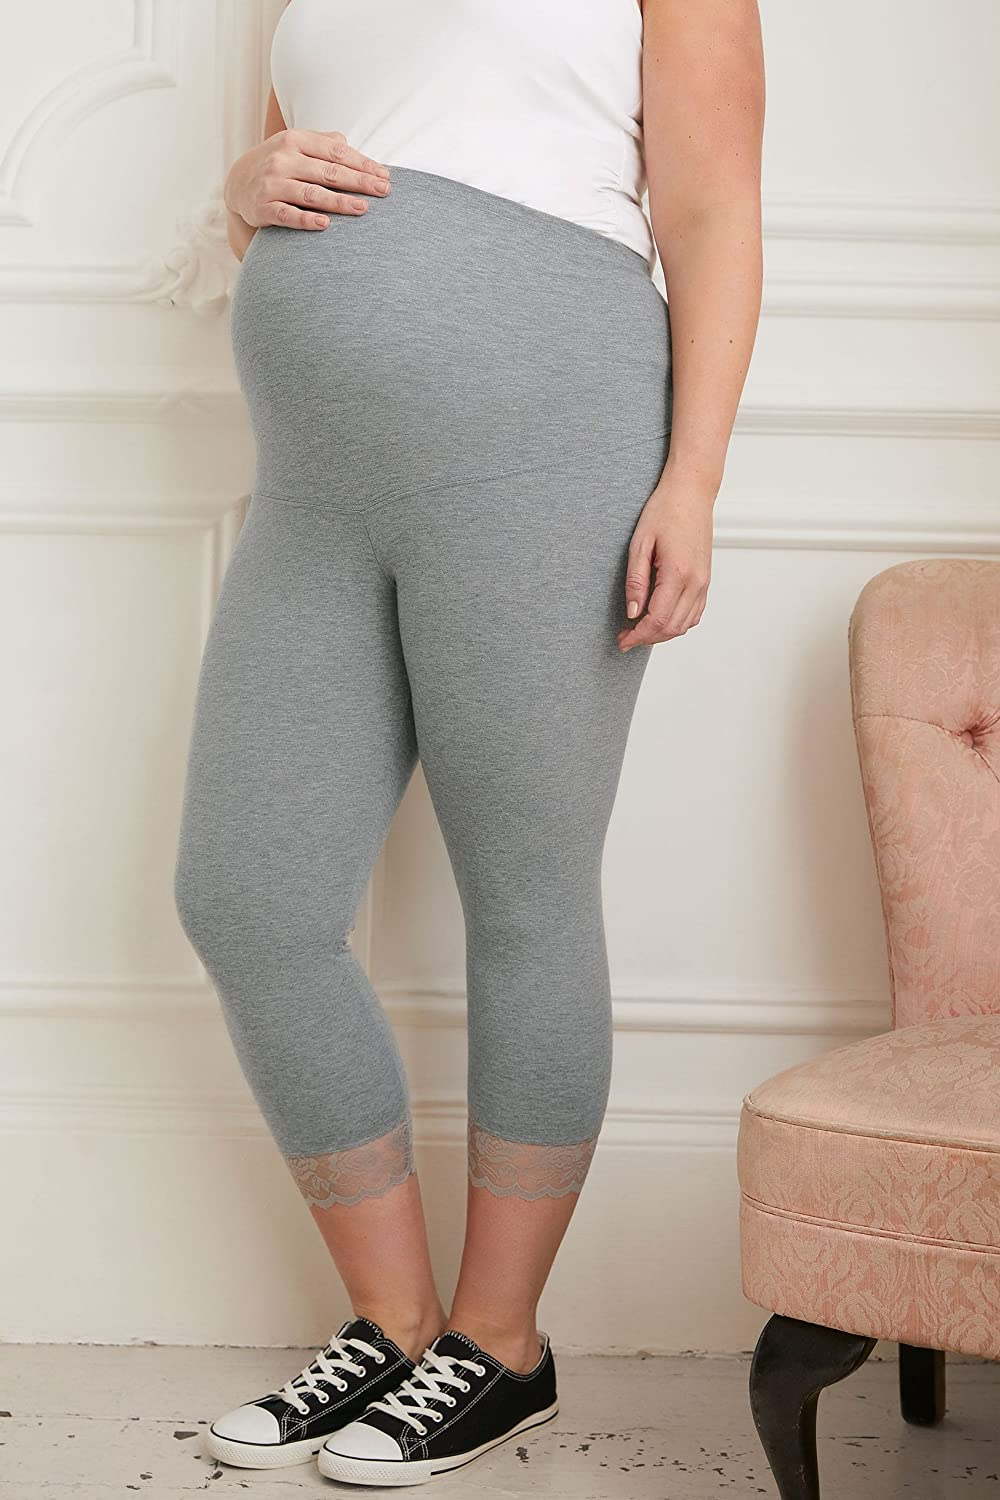 Yours Womens Plus Size Bump It Up Maternity Cropped Leggings with Comfort Panel and L